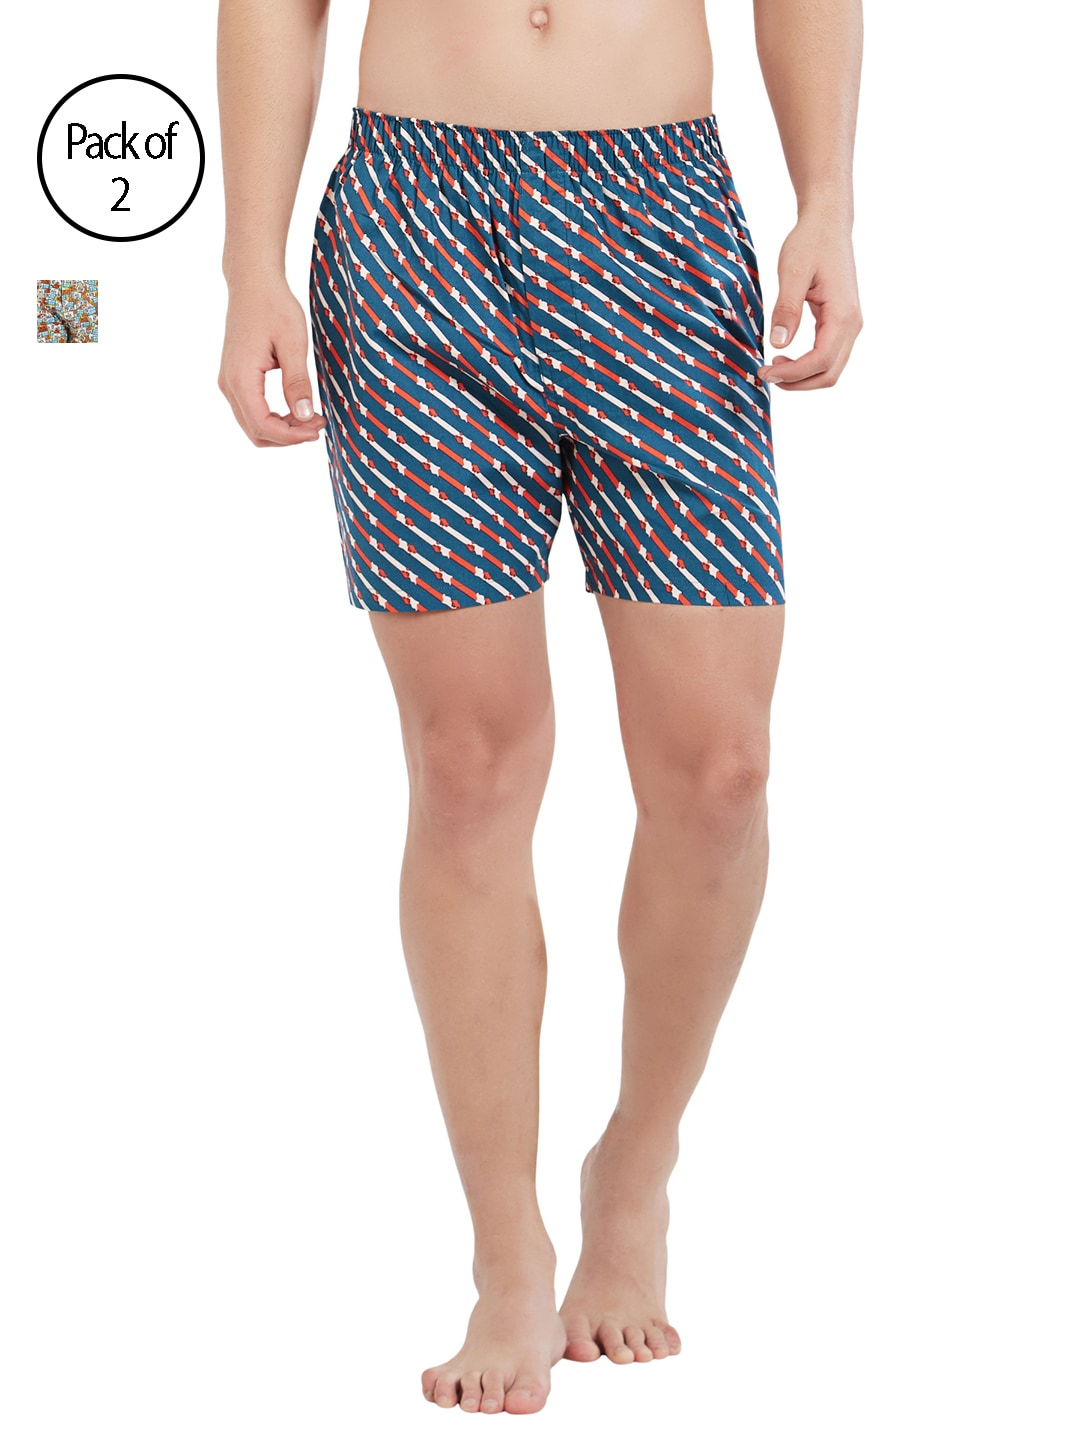 XYXX Men Pack of 2 Slim Fit Printed Boxers XYBOX2PCKN64 image